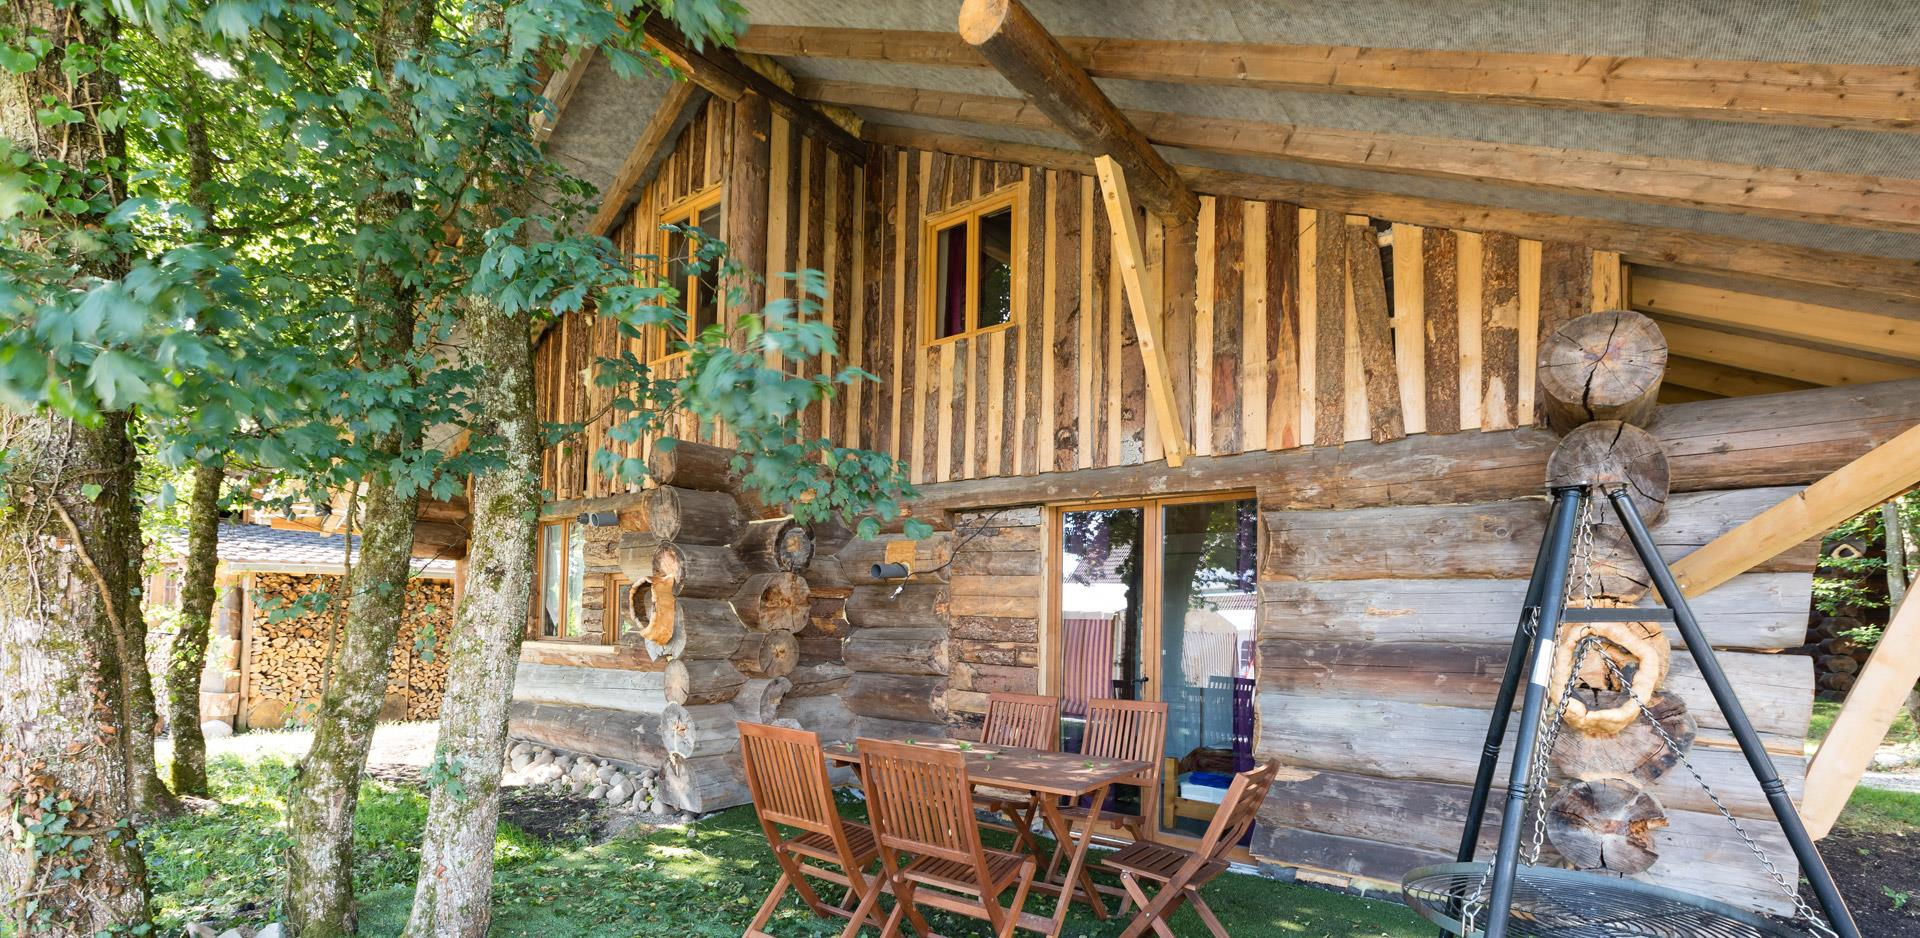 Holiday rentals of log cabins and wooden chalet near Mulhouse